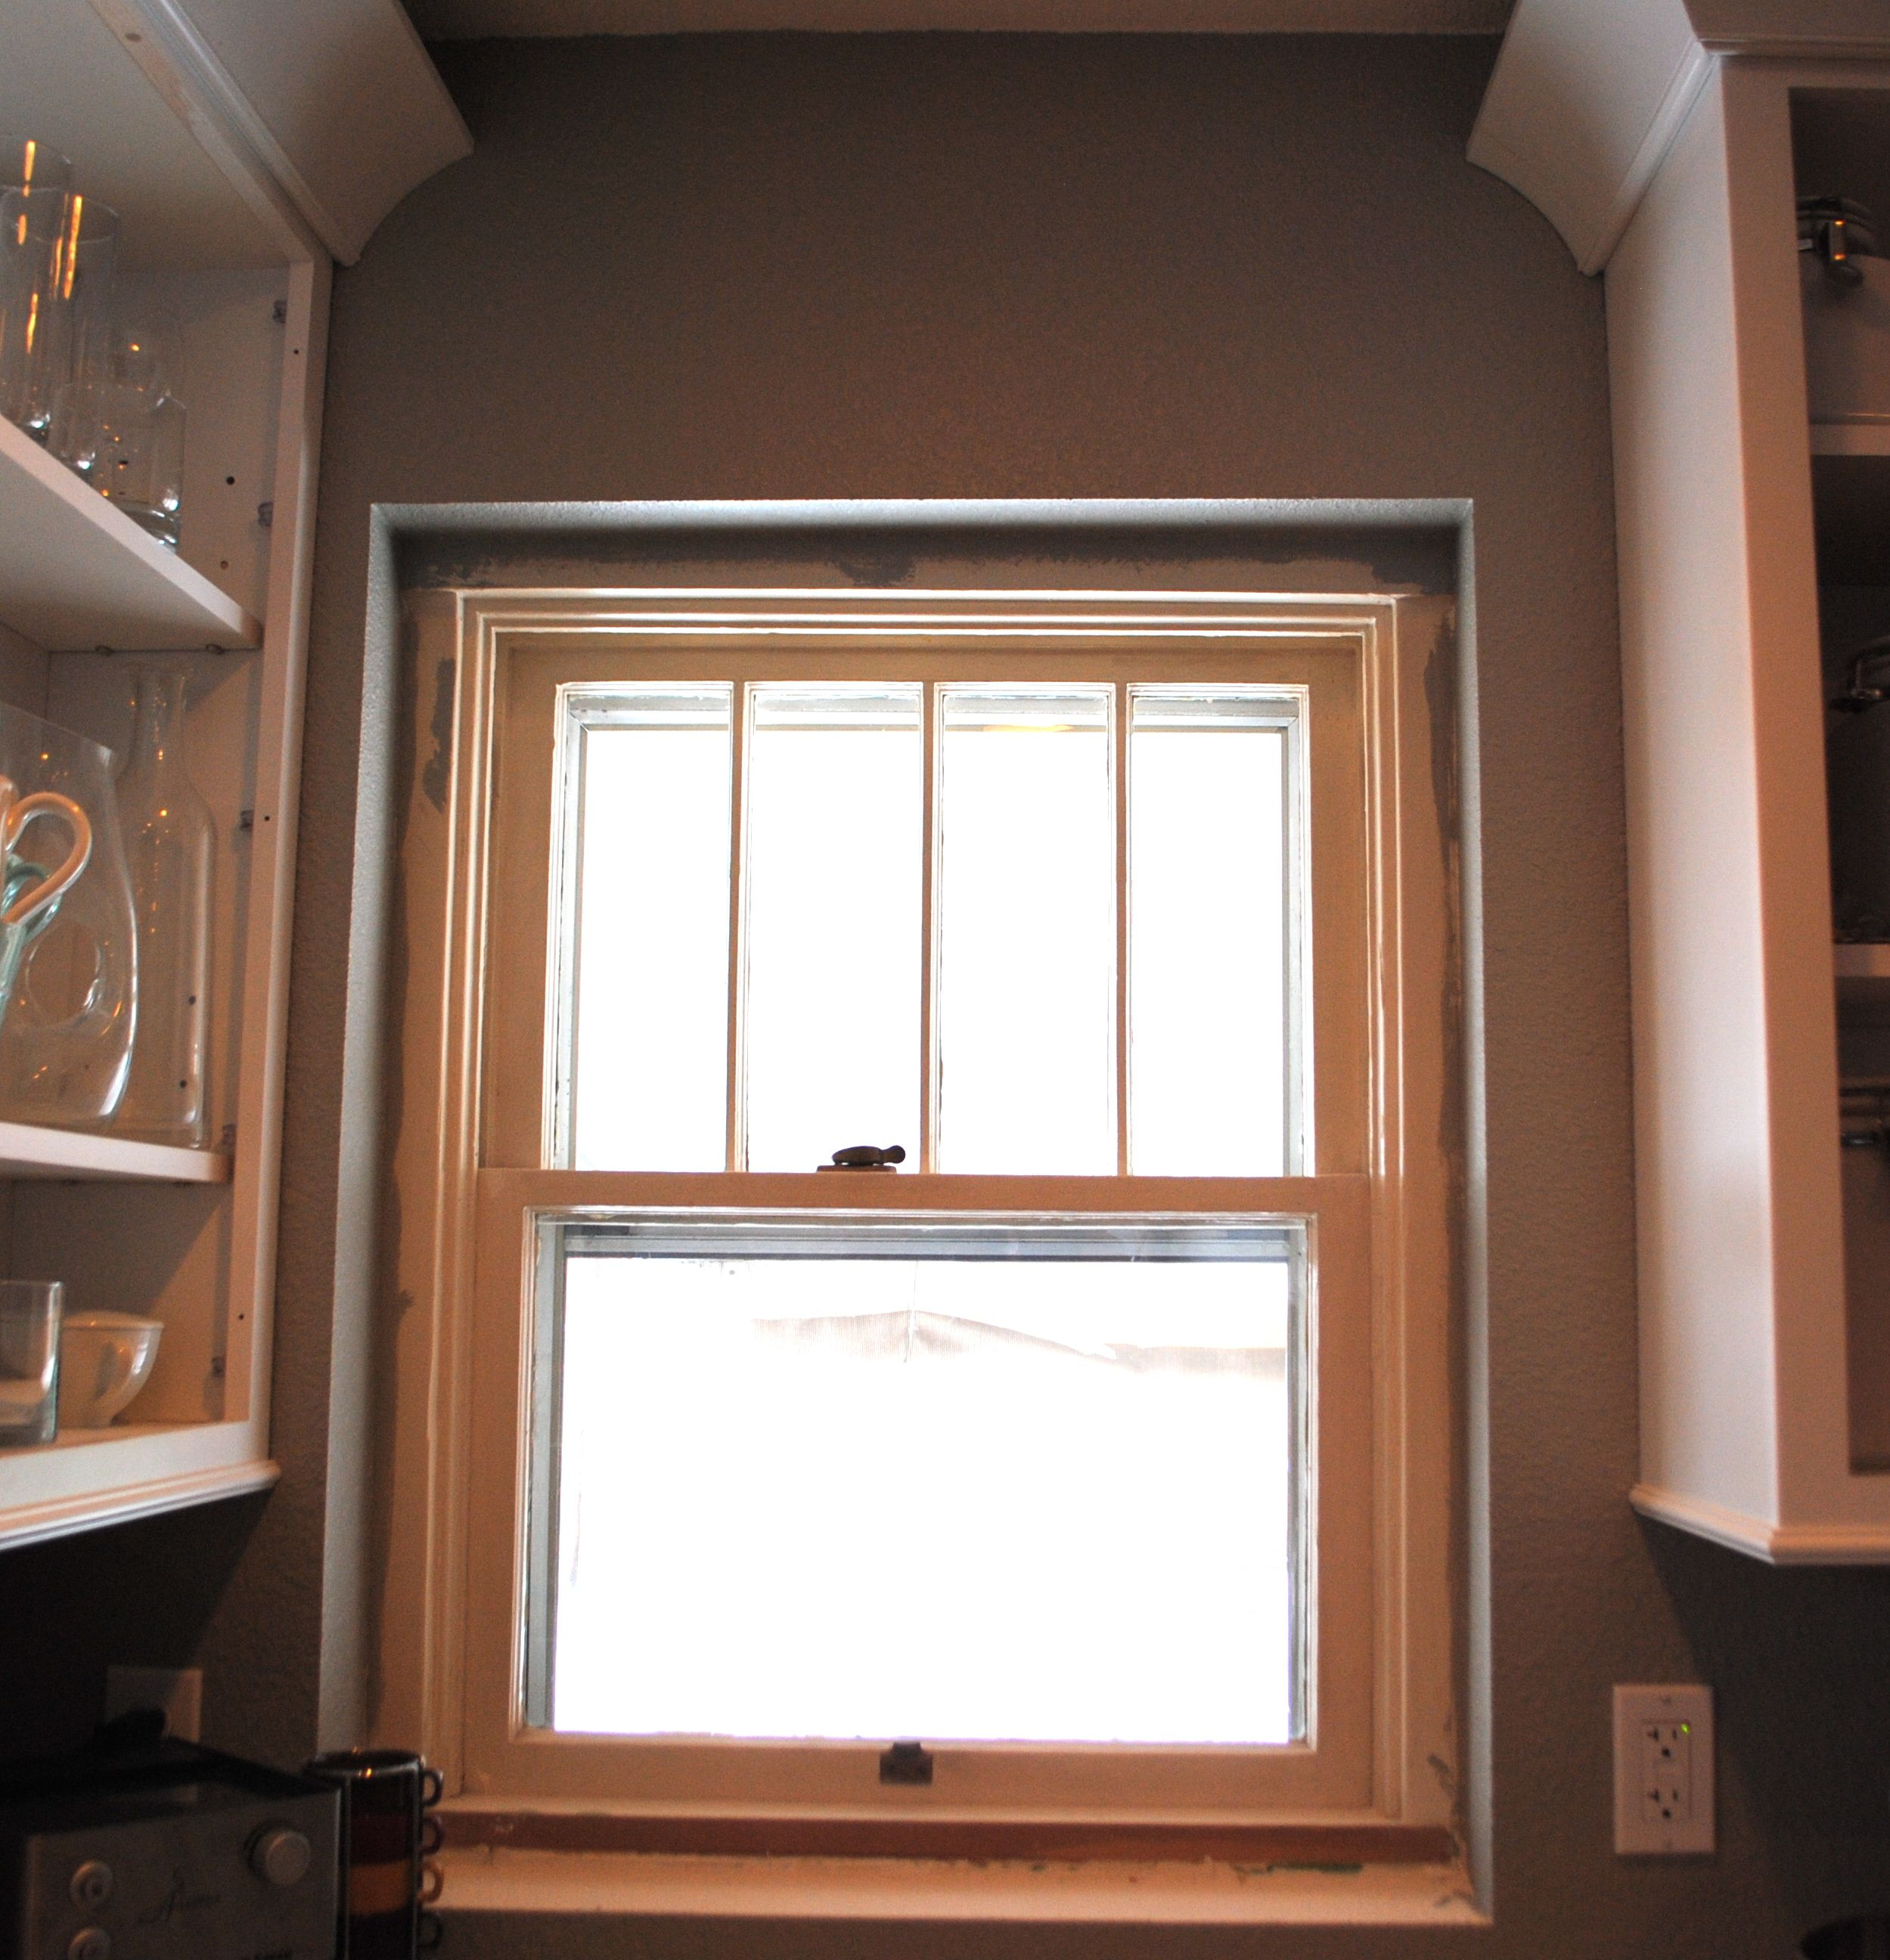 Outside window design ideas  window trim ideas and how to choose one for your home in